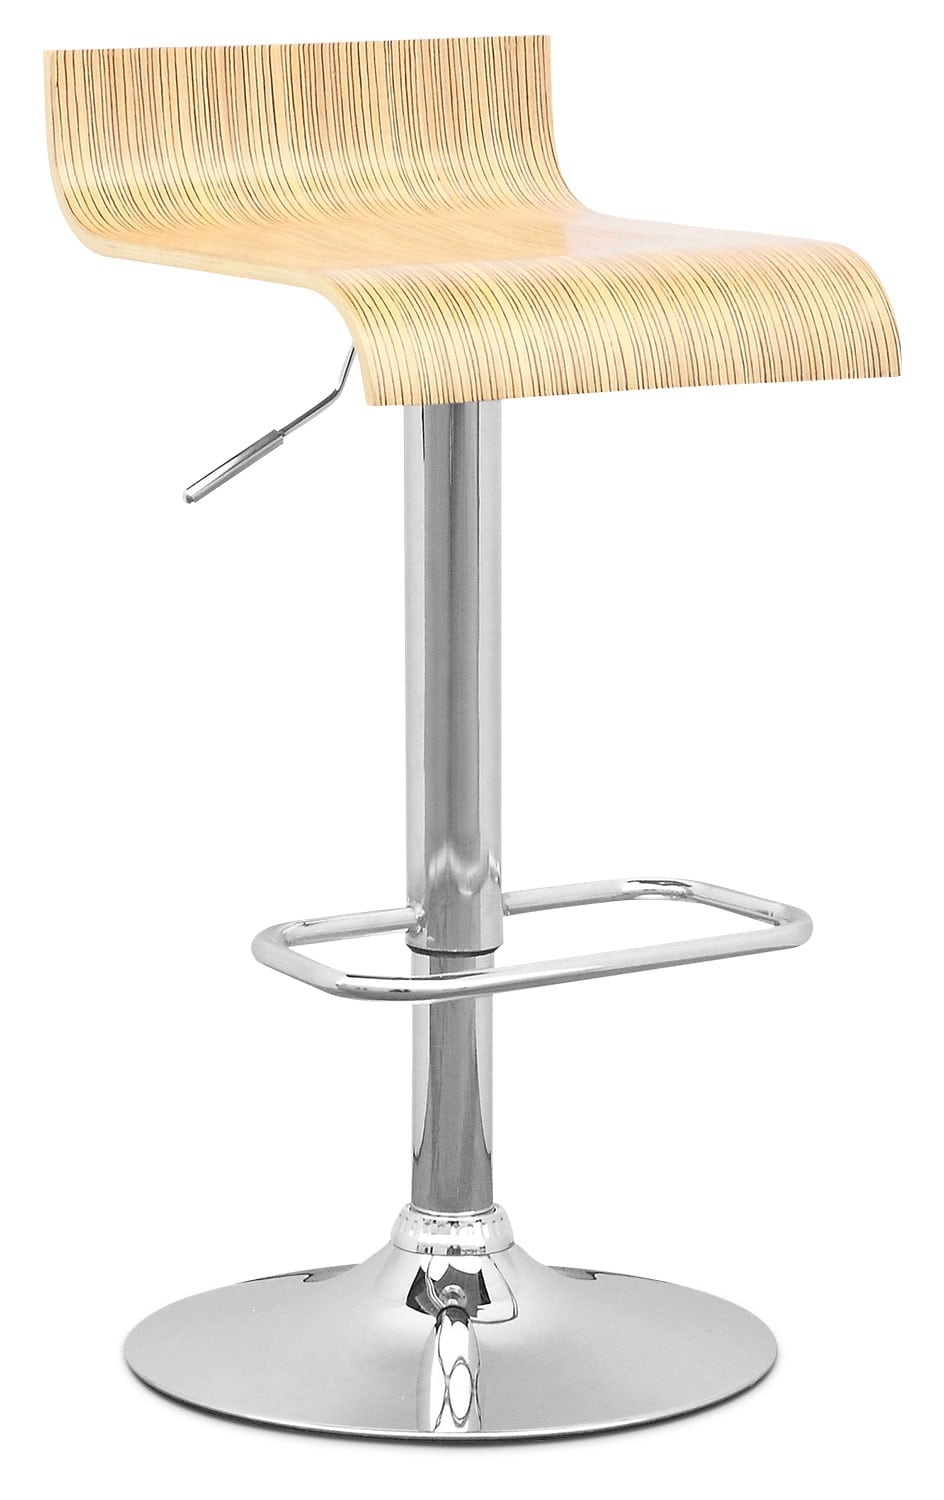 Dining Room Furniture - CorLiving Curved-Seat Adjustable Barstool